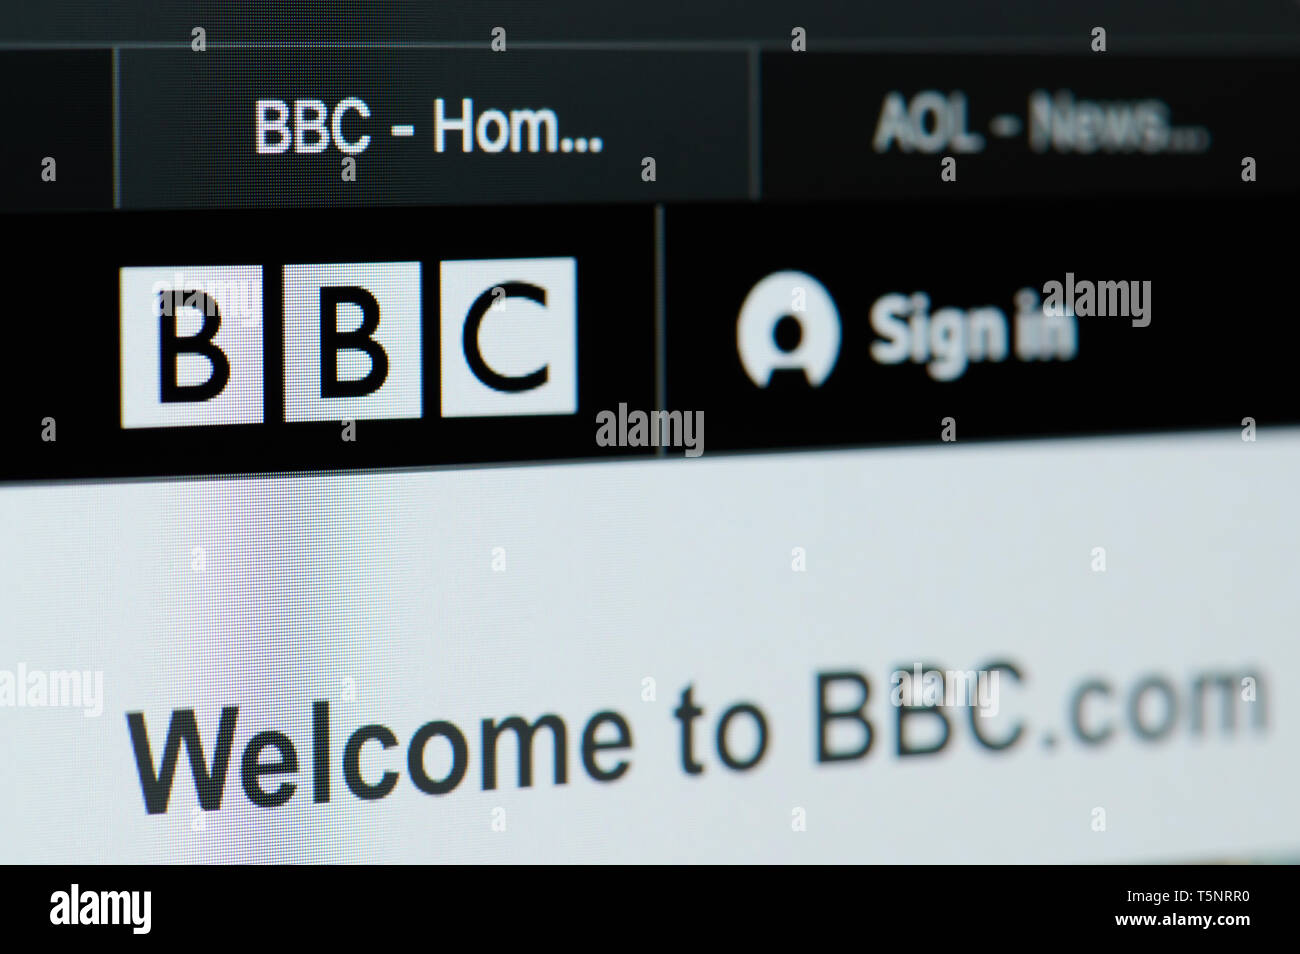 New york, USA - april 22, 2019: BBC news home page on laptop screen close up - Stock Image